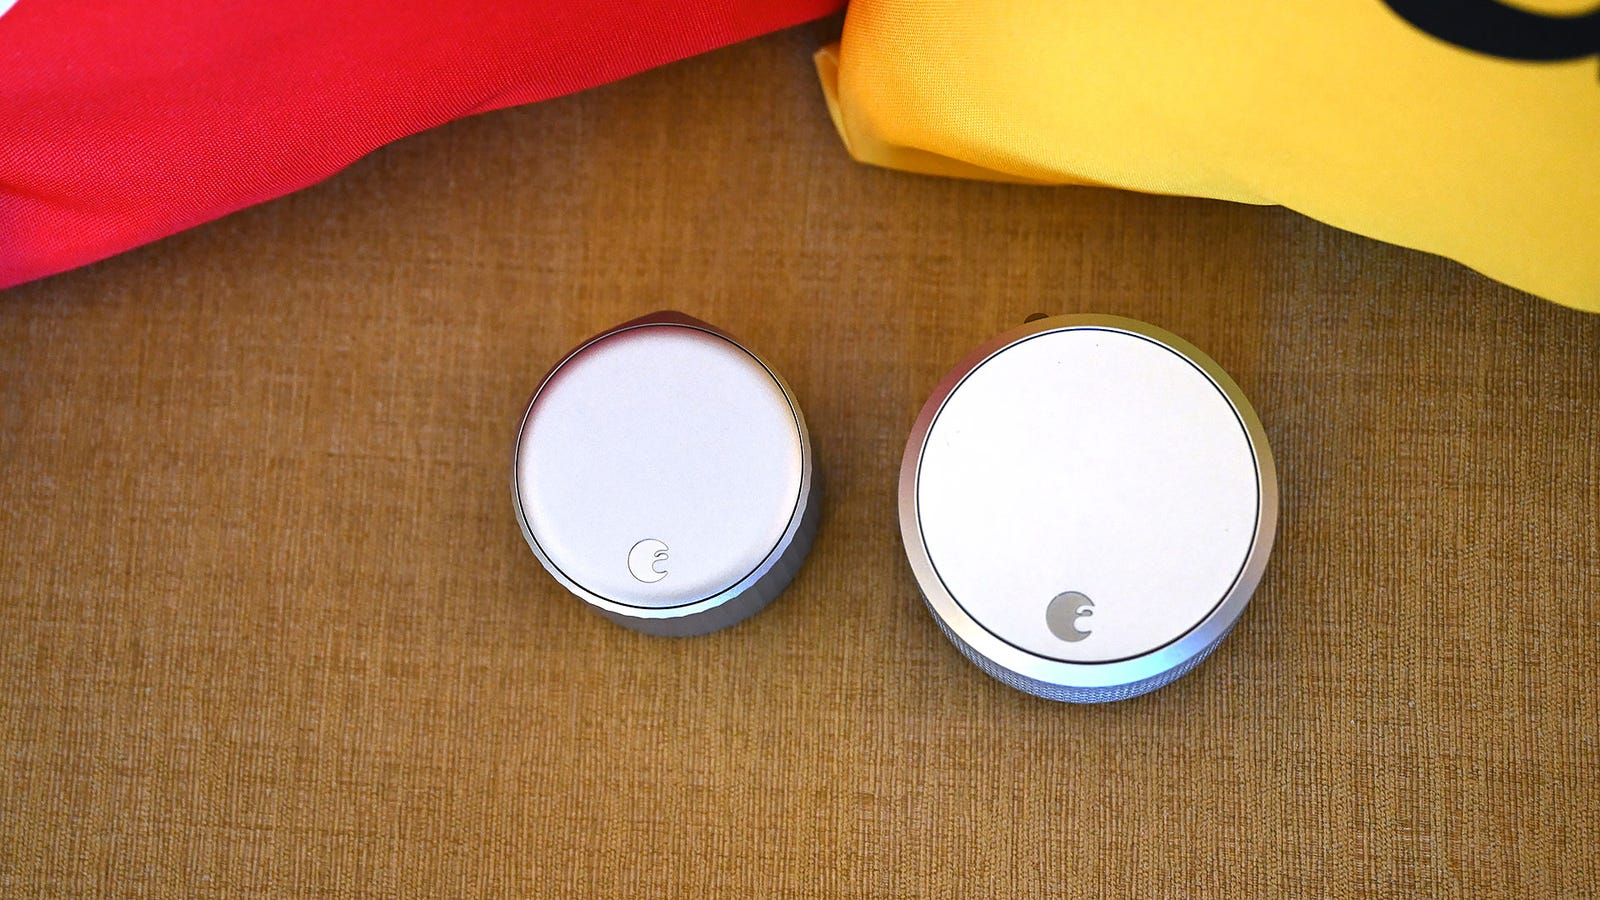 Here's a size comparison between the new Wi-Fi Smart Lock (left) and the August's previous Smart Lock Pro (right).